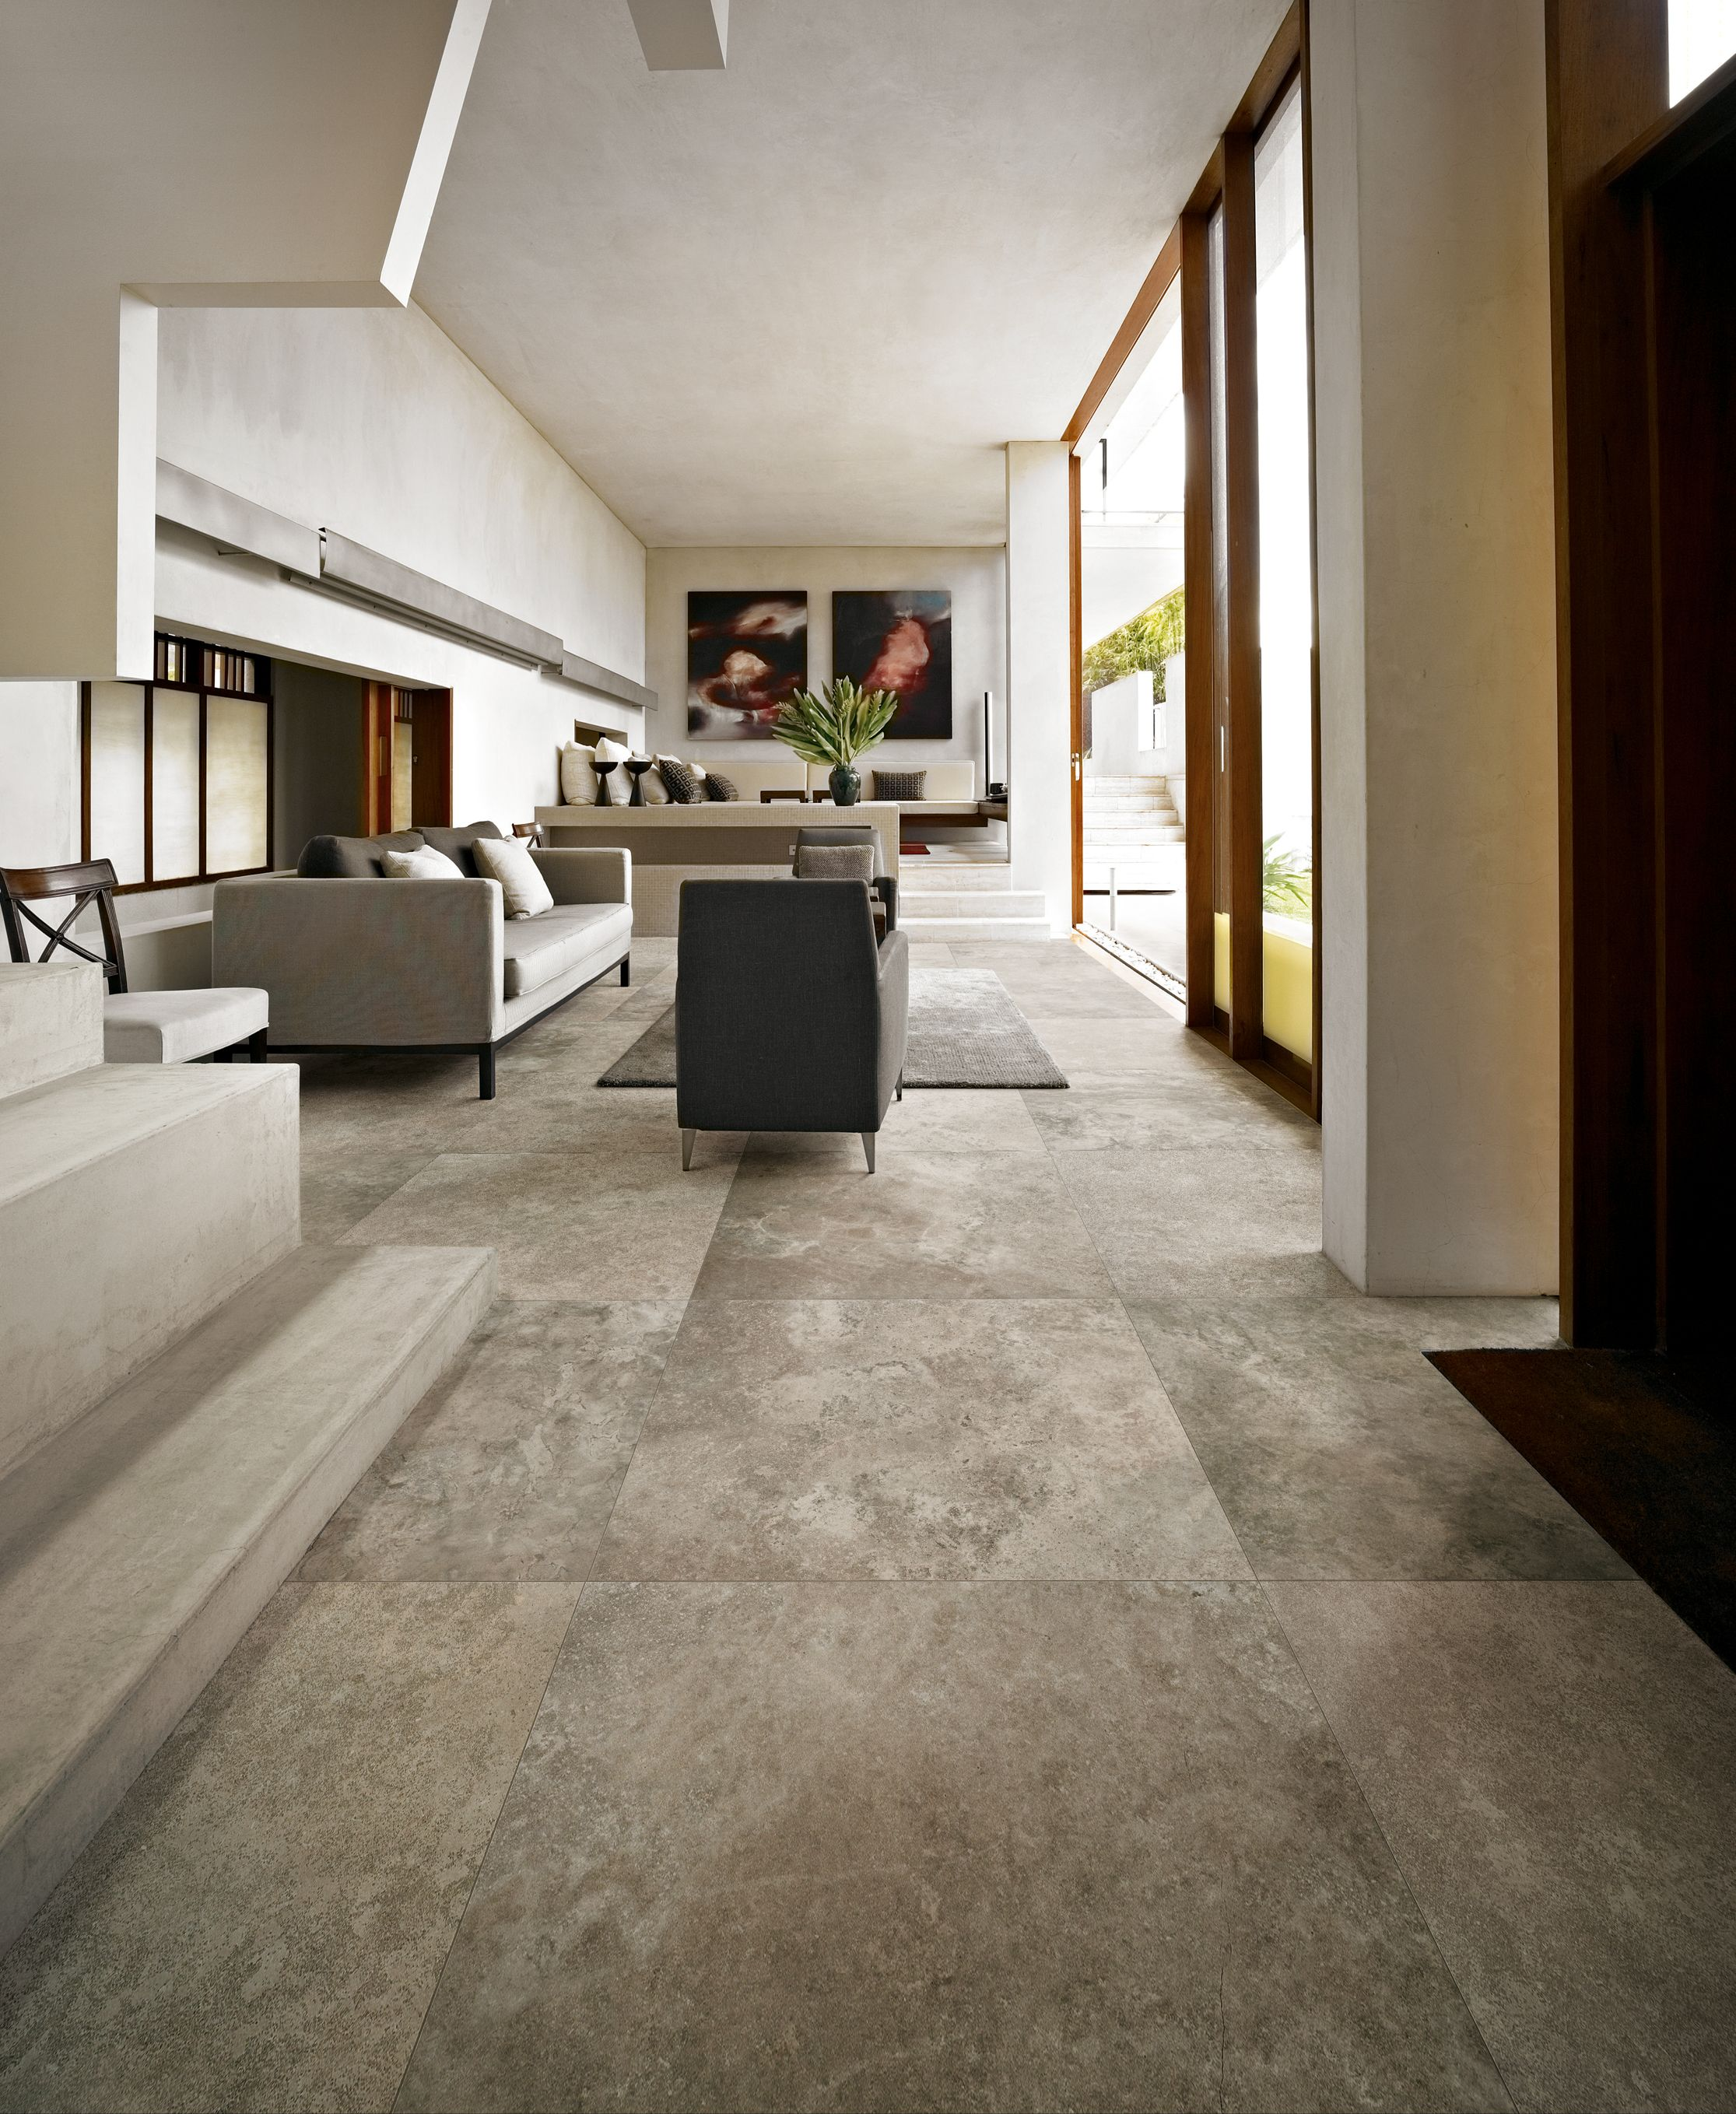 velvet platinum porcelain tiles from italy - large format tiles